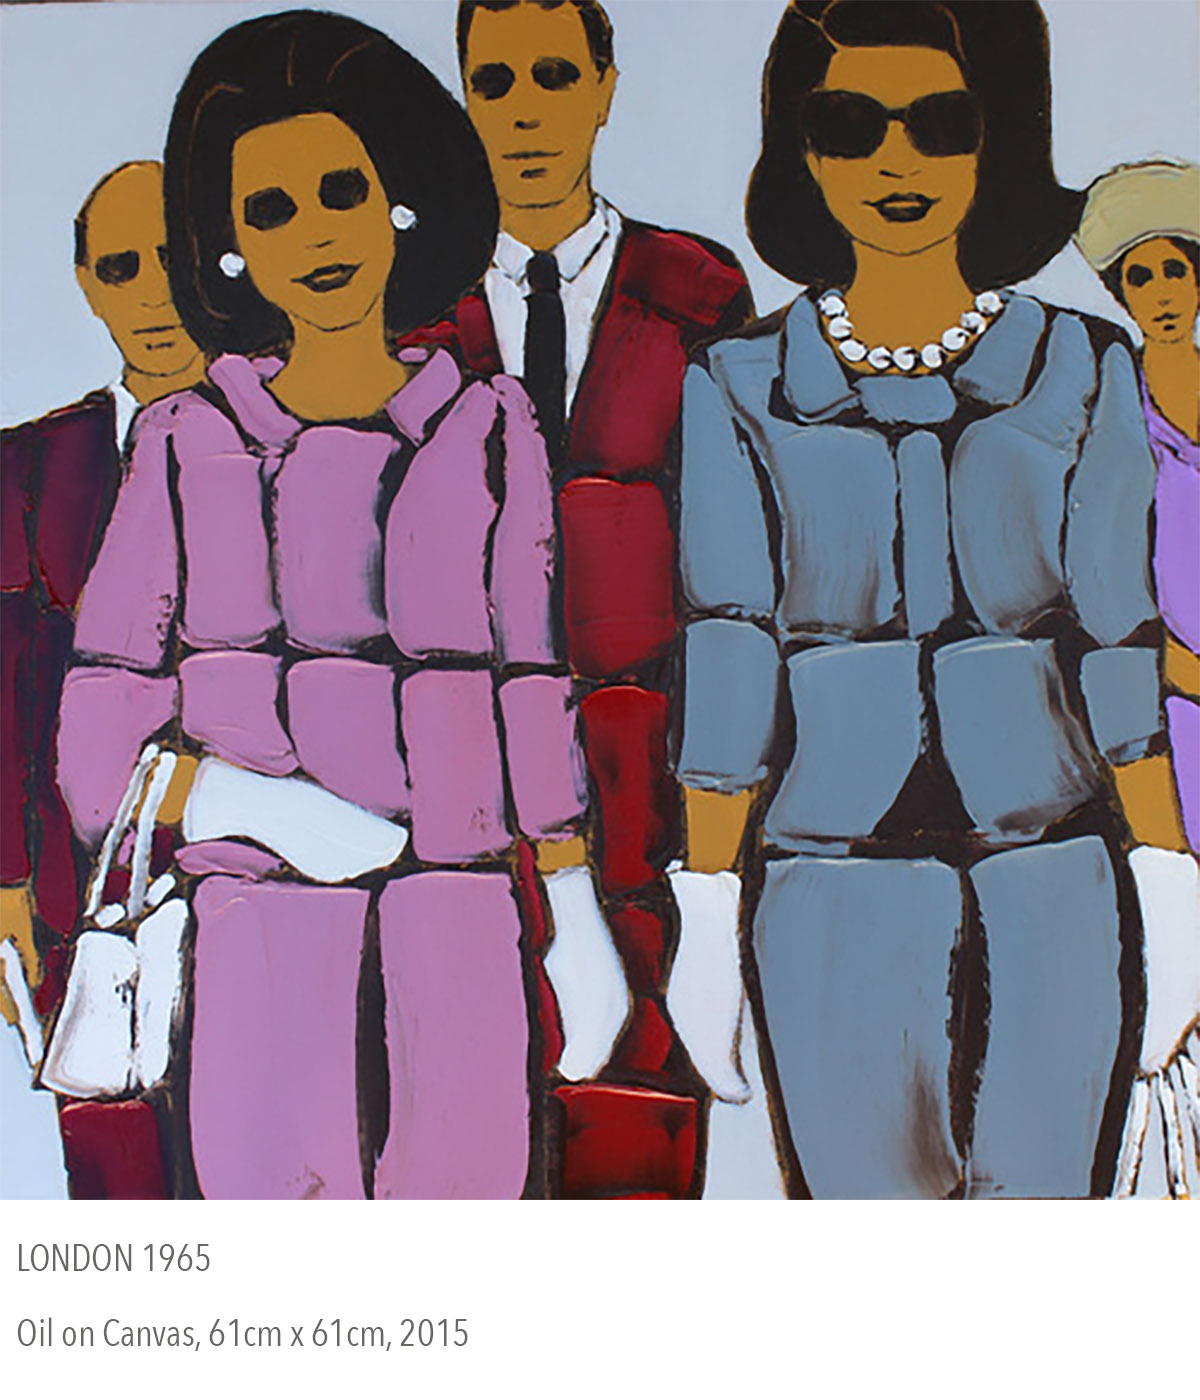 2015 oil painting called London 1965